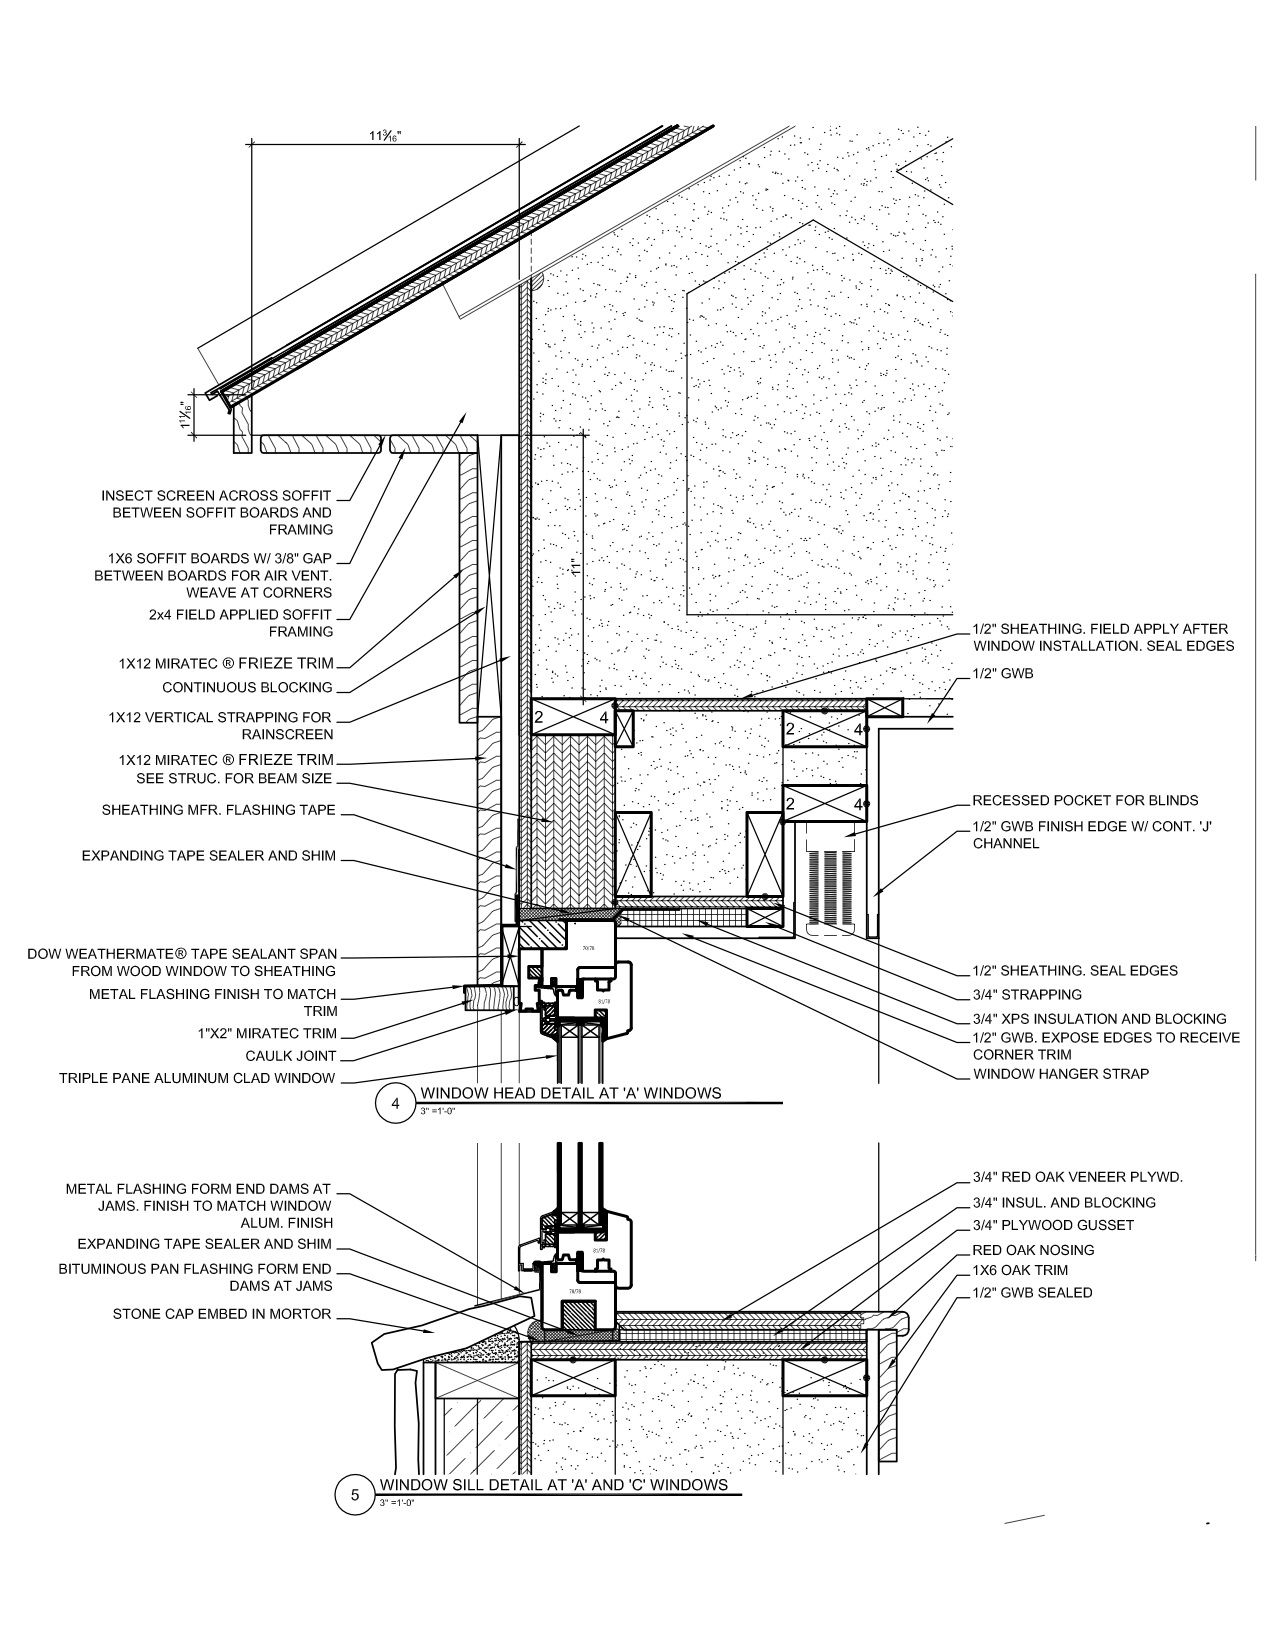 Chris Briley S Drawing Shows The Installation Details For